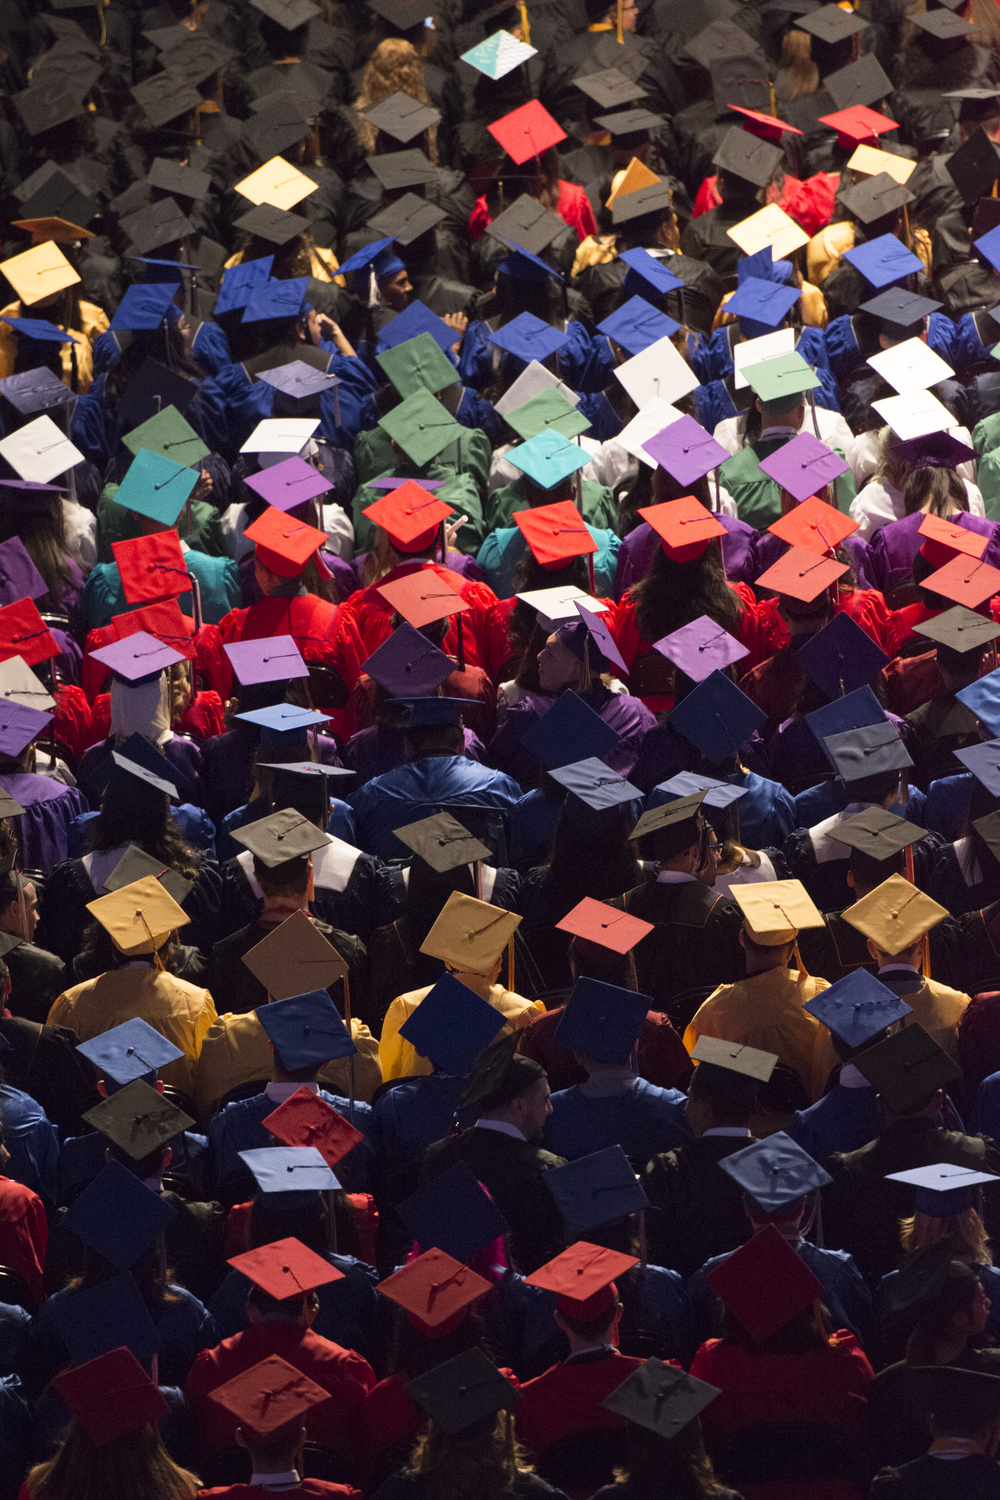 Newly graduated students are shown during the Clark County School District's summer commencement ceremony at Orleans Arena in Las Vegas, Tuesday, Aug. 18, 2015. Each color of cap and gown represent a different high school. (Jason Ogulnik/Las Vegas Review-Journal)